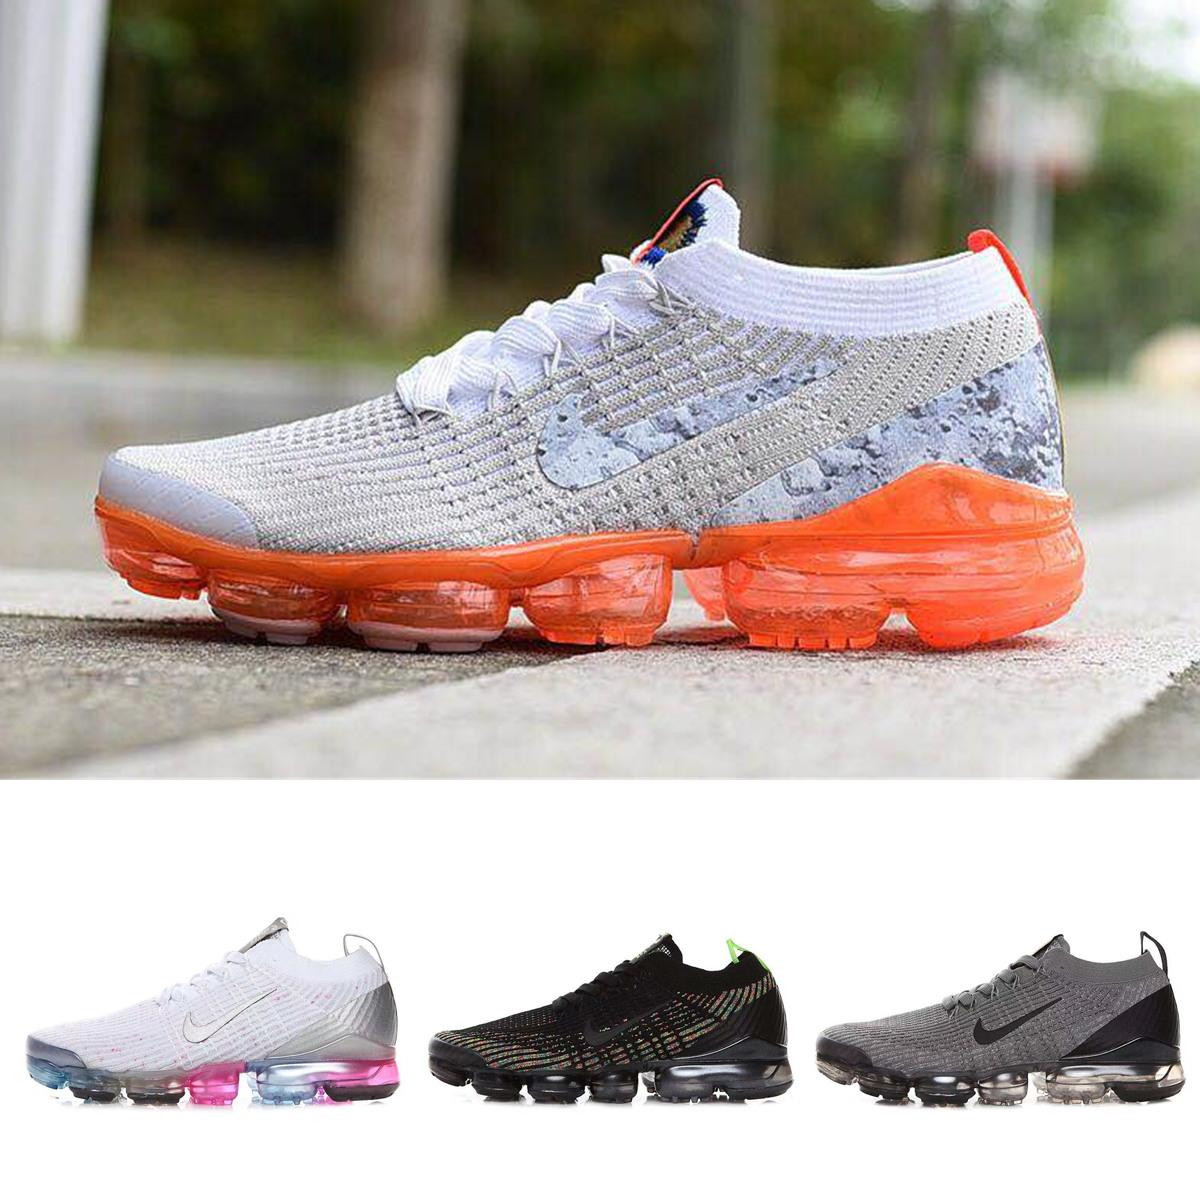 super popular 73988 e8347 2019 Airs Newest Vapors Beture All White/Black Rainbow Maxes Men Running  Shoes Off Sport Trainer Mens TN 97 270 Sneakers